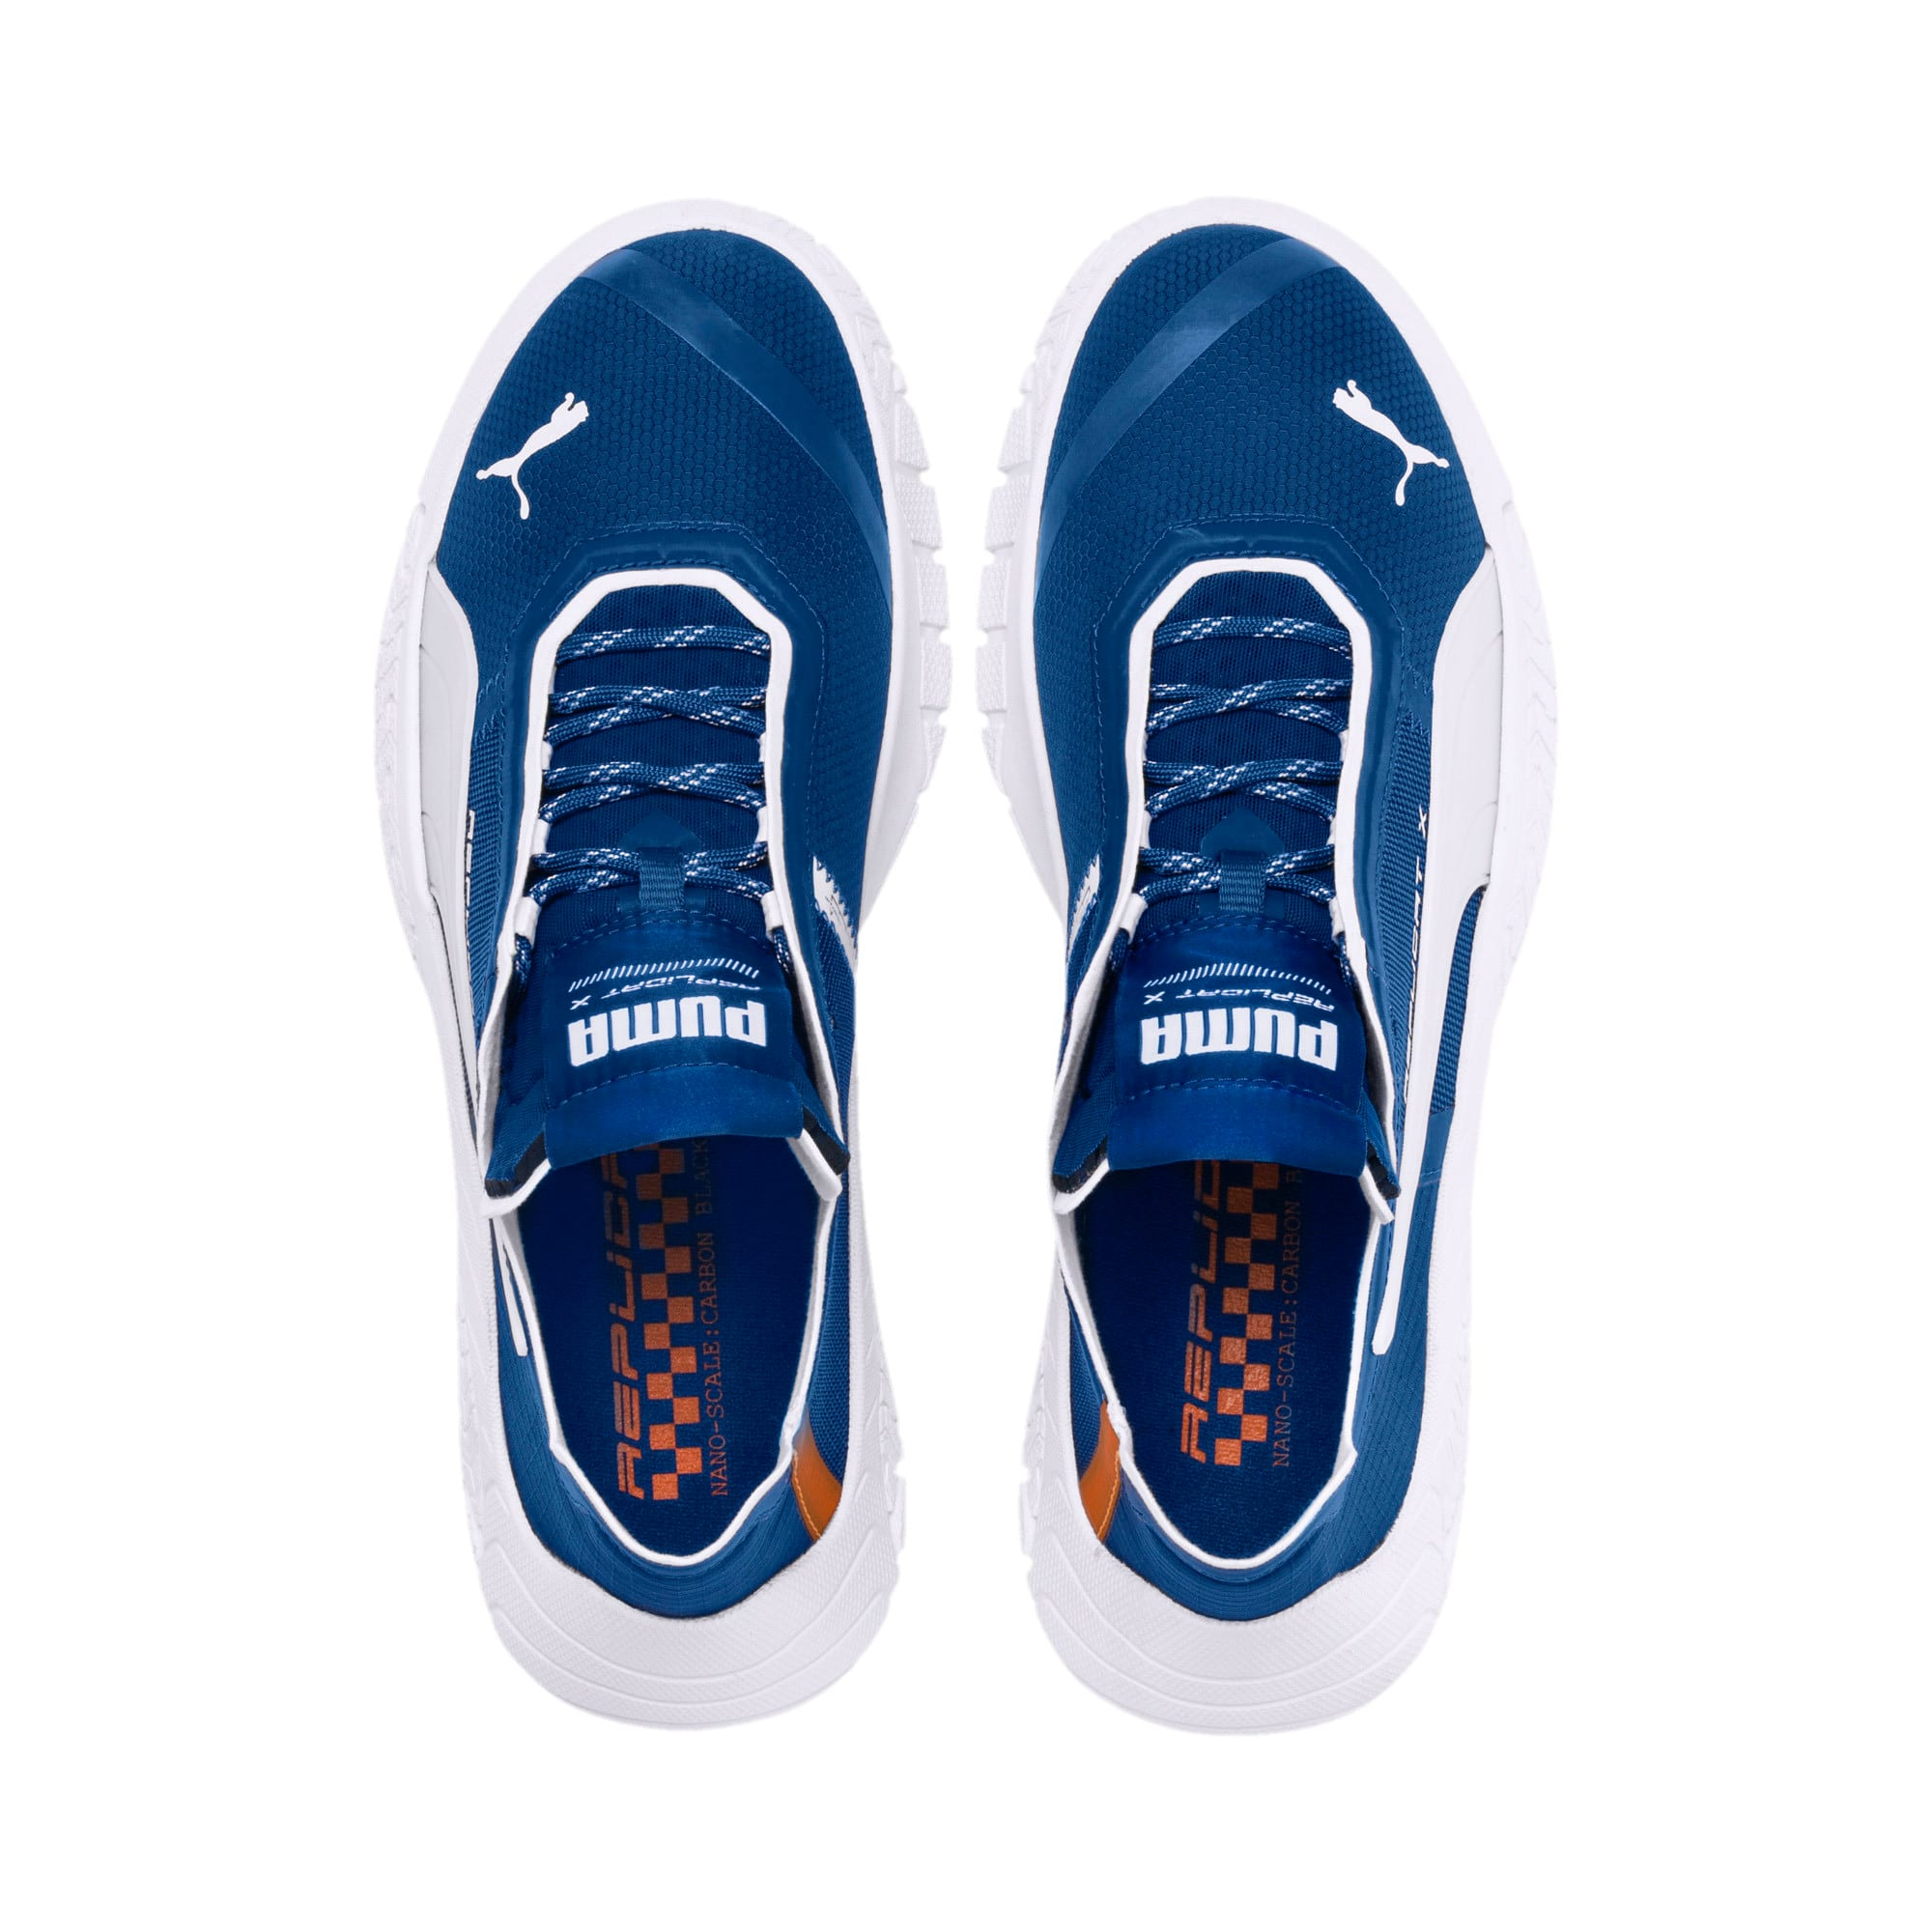 Thumbnail 6 of Replicat-X Circuit Trainers, Galaxy Blue-Puma White, medium